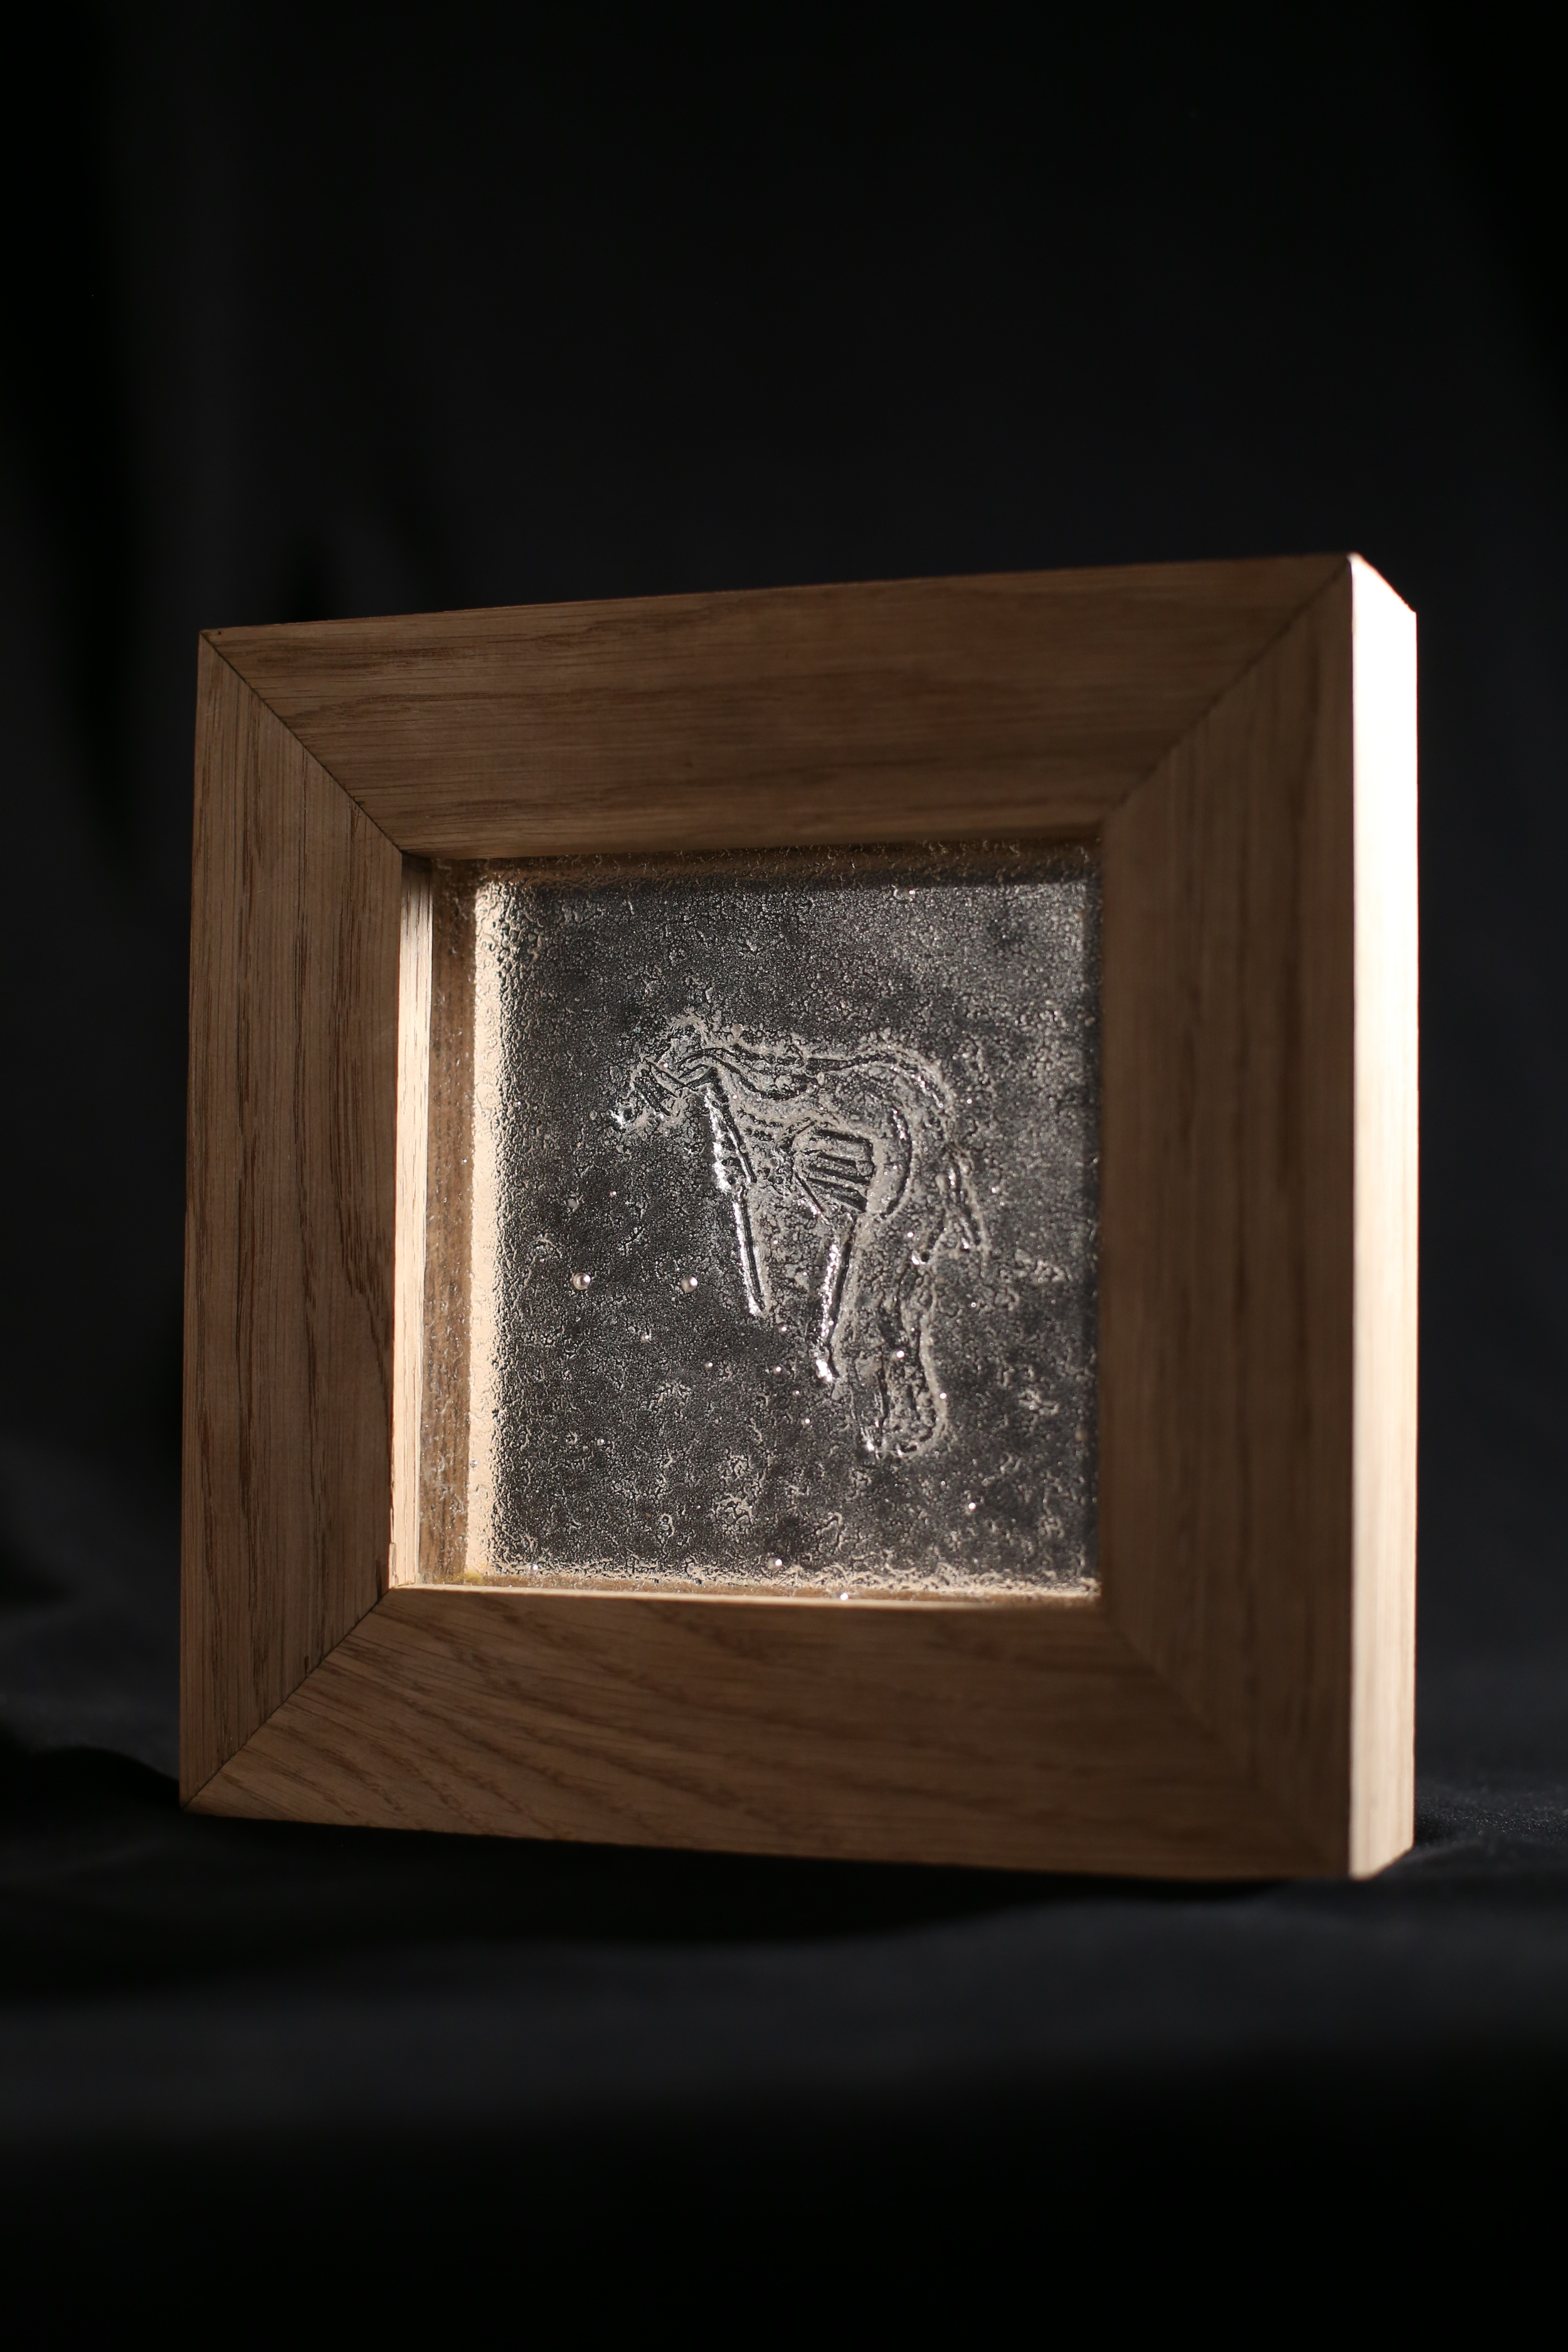 Preservation 2014 Cast glass and wood 8.5 x 3 x 8.5 in 22 x 7.5 x 22 cm